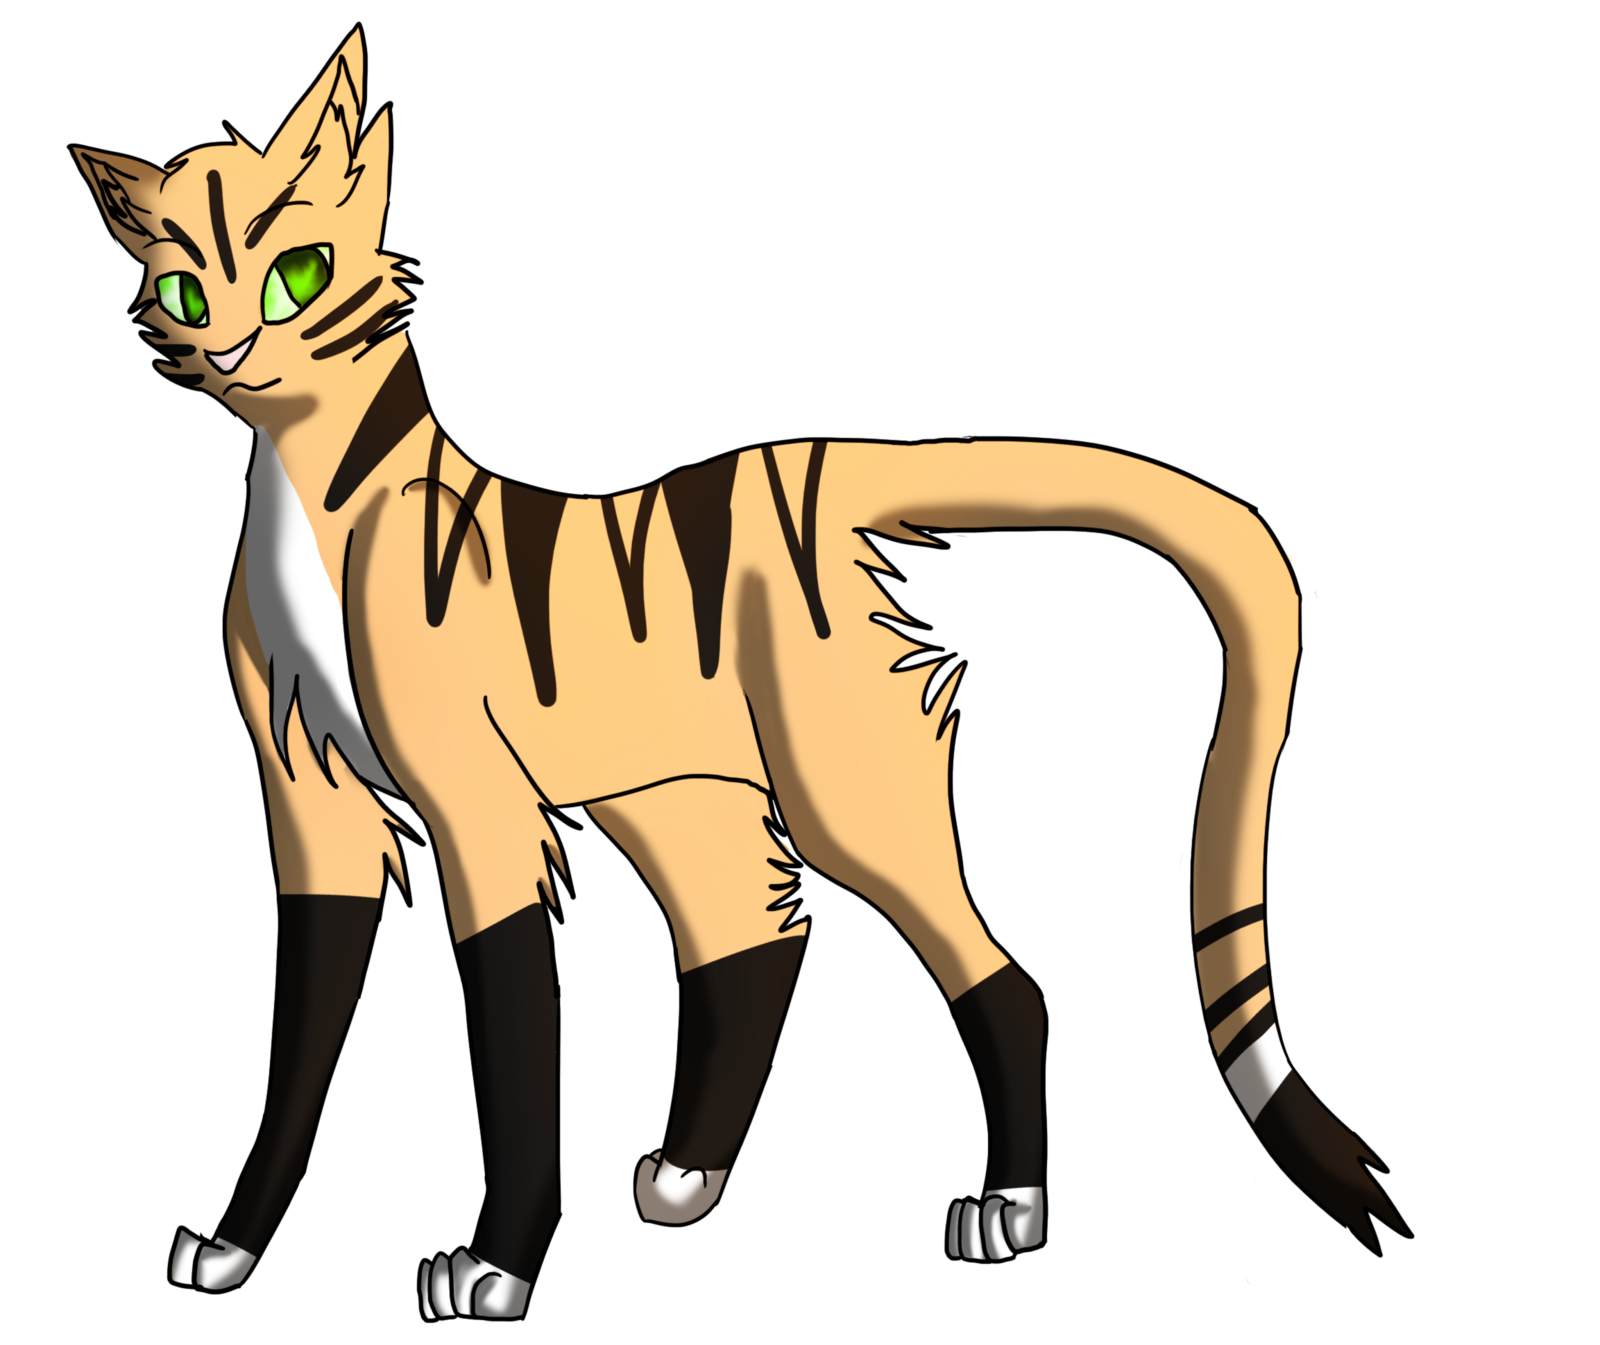 Friendship clipart mate. Name creamtail roll warrior